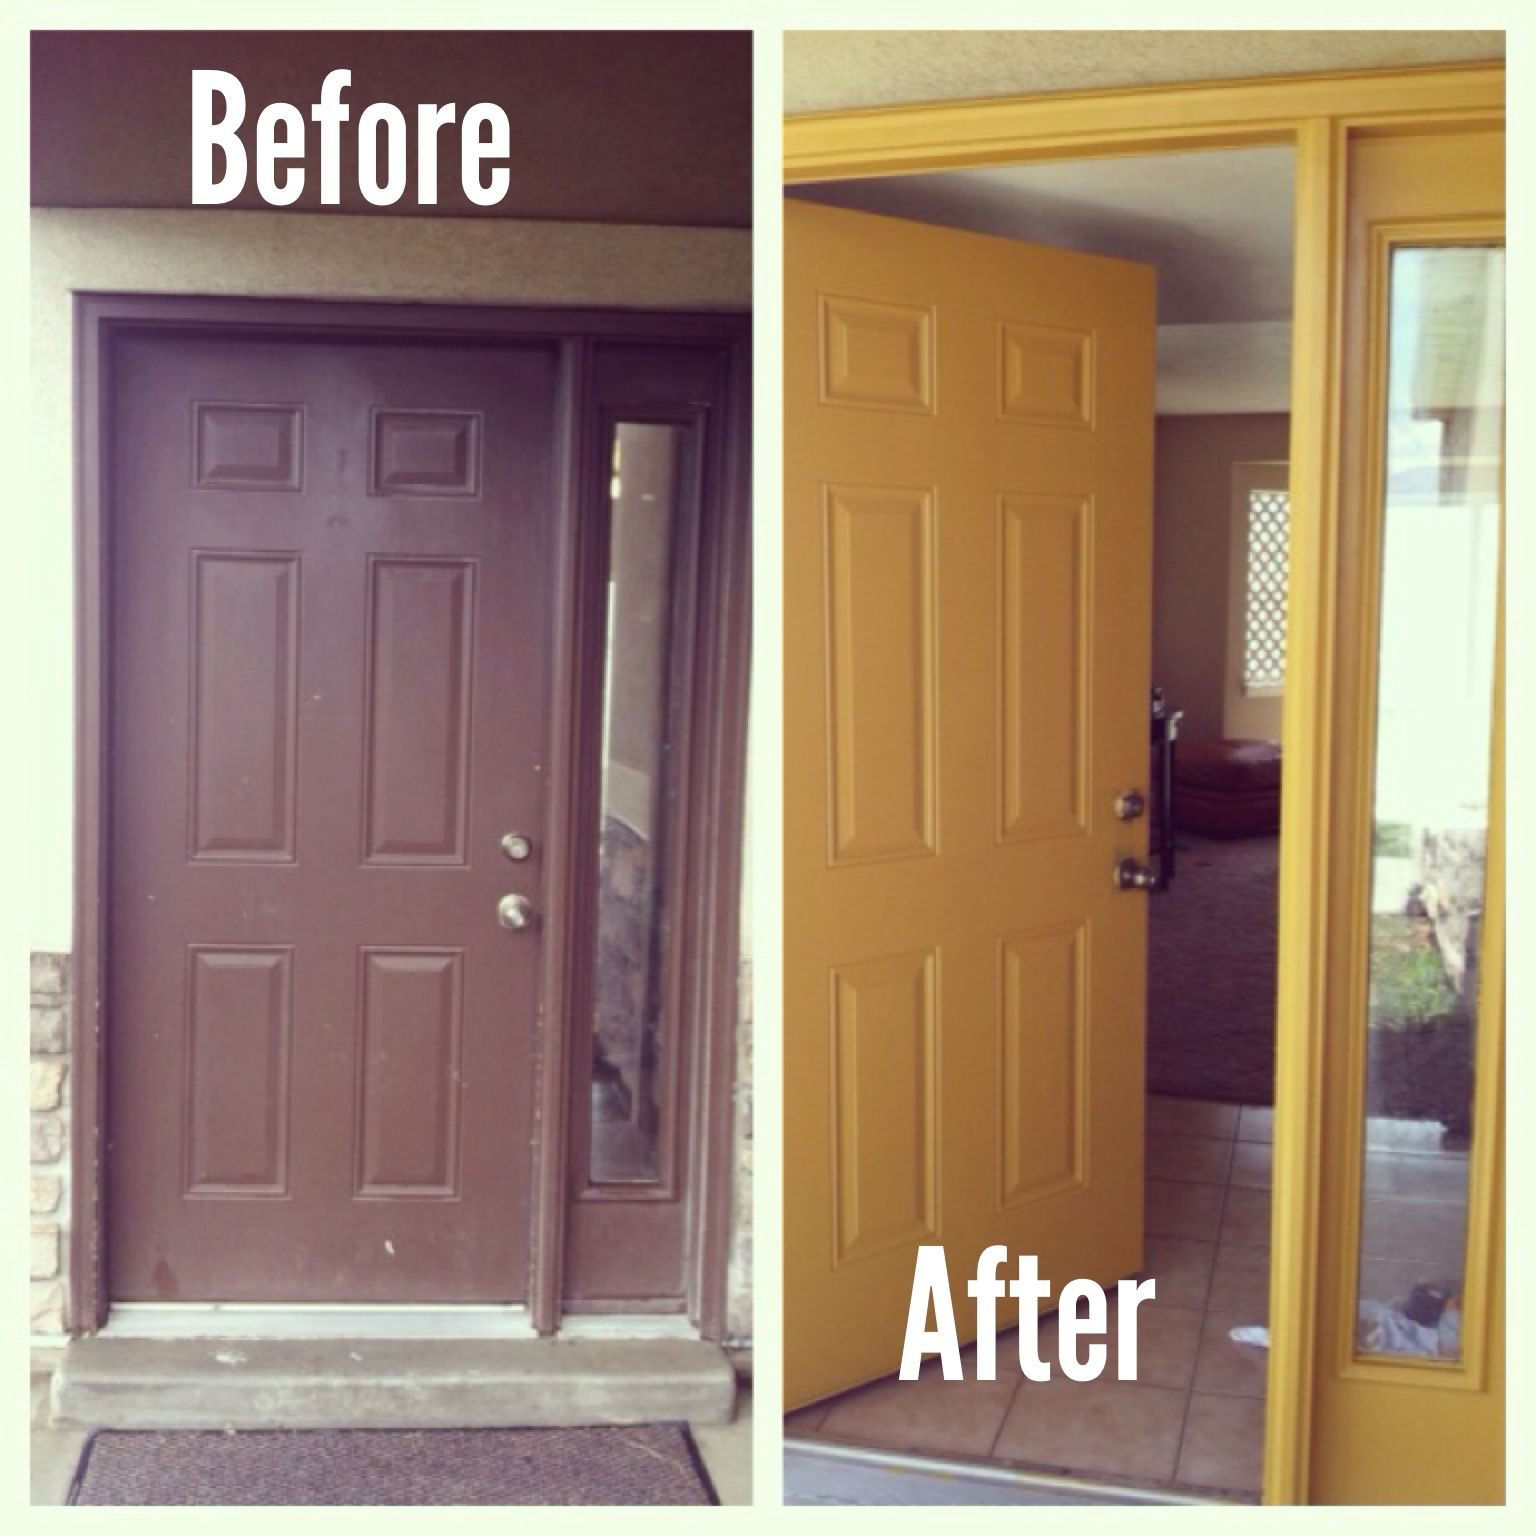 I Painted My Plain Brown Door With A Behrmarquee Semigloss Paint Color Called Light Copper It Transformed My F Yellow Front Doors House Colors Painted Doors